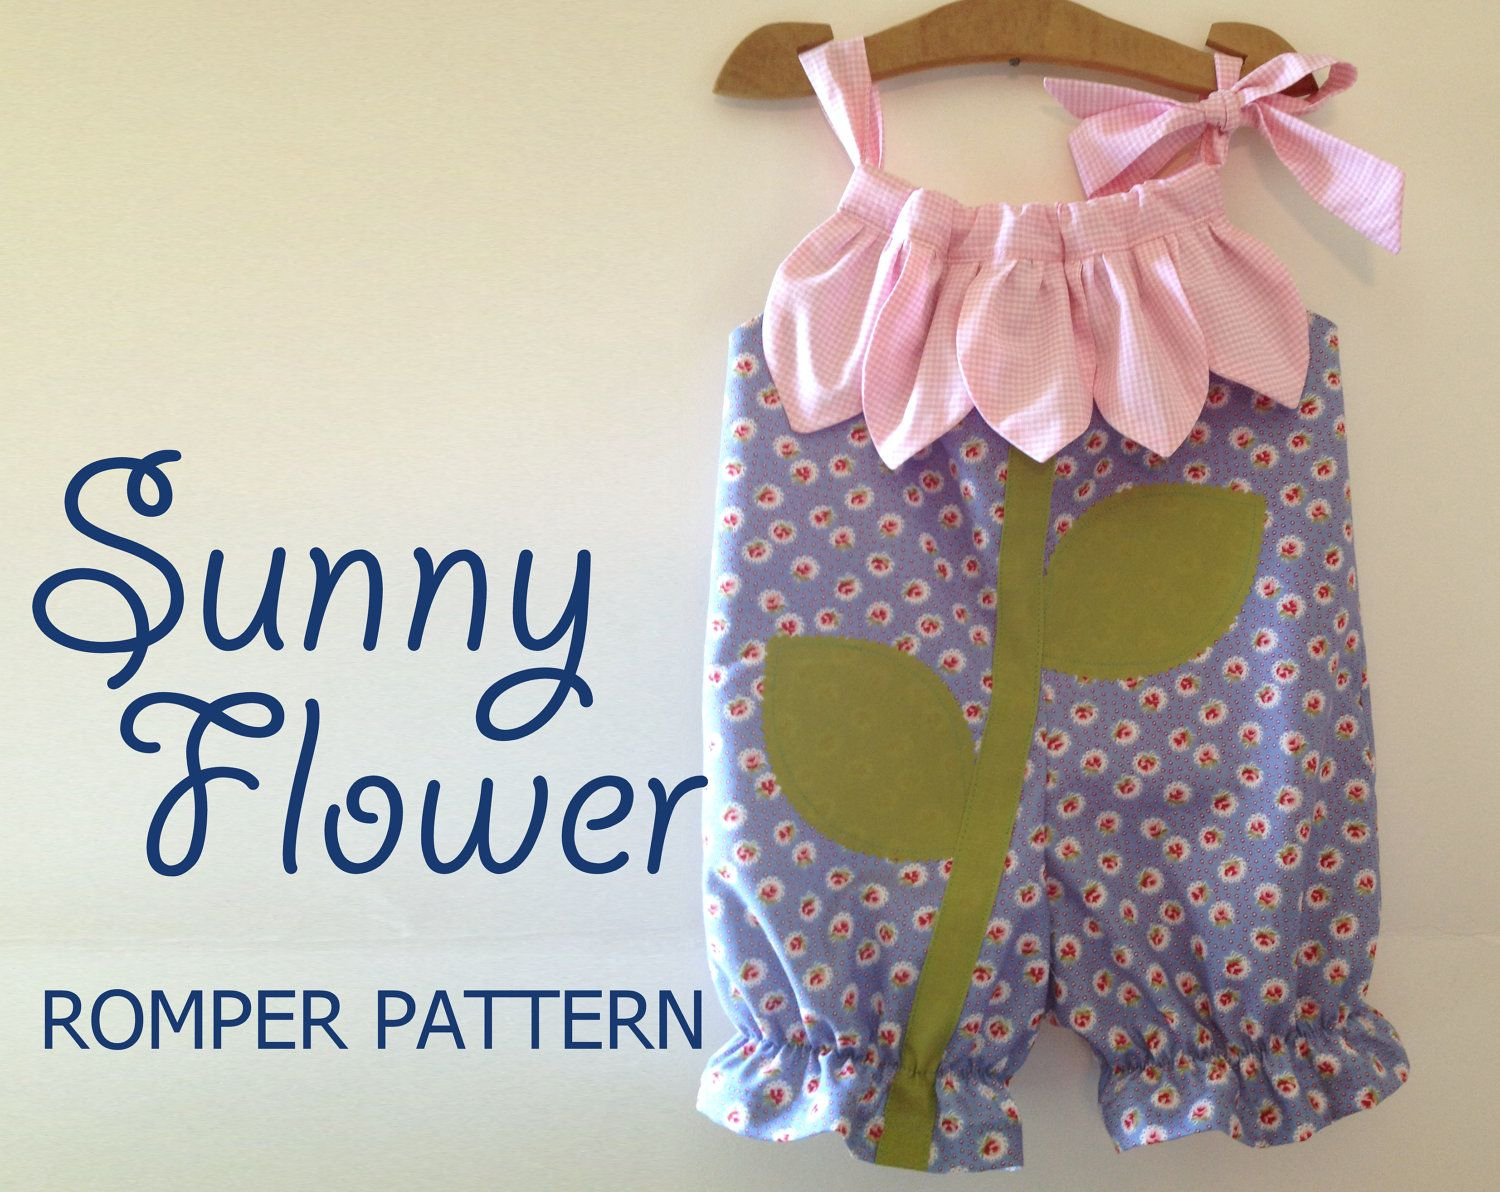 Sunny flower pillowcase romper pattern girl baby toddler sewing sunny flower pillowcase romper pattern girl baby toddler sewing pattern easy sew sizes 12 1 2 3 4 5 6 included jeuxipadfo Choice Image